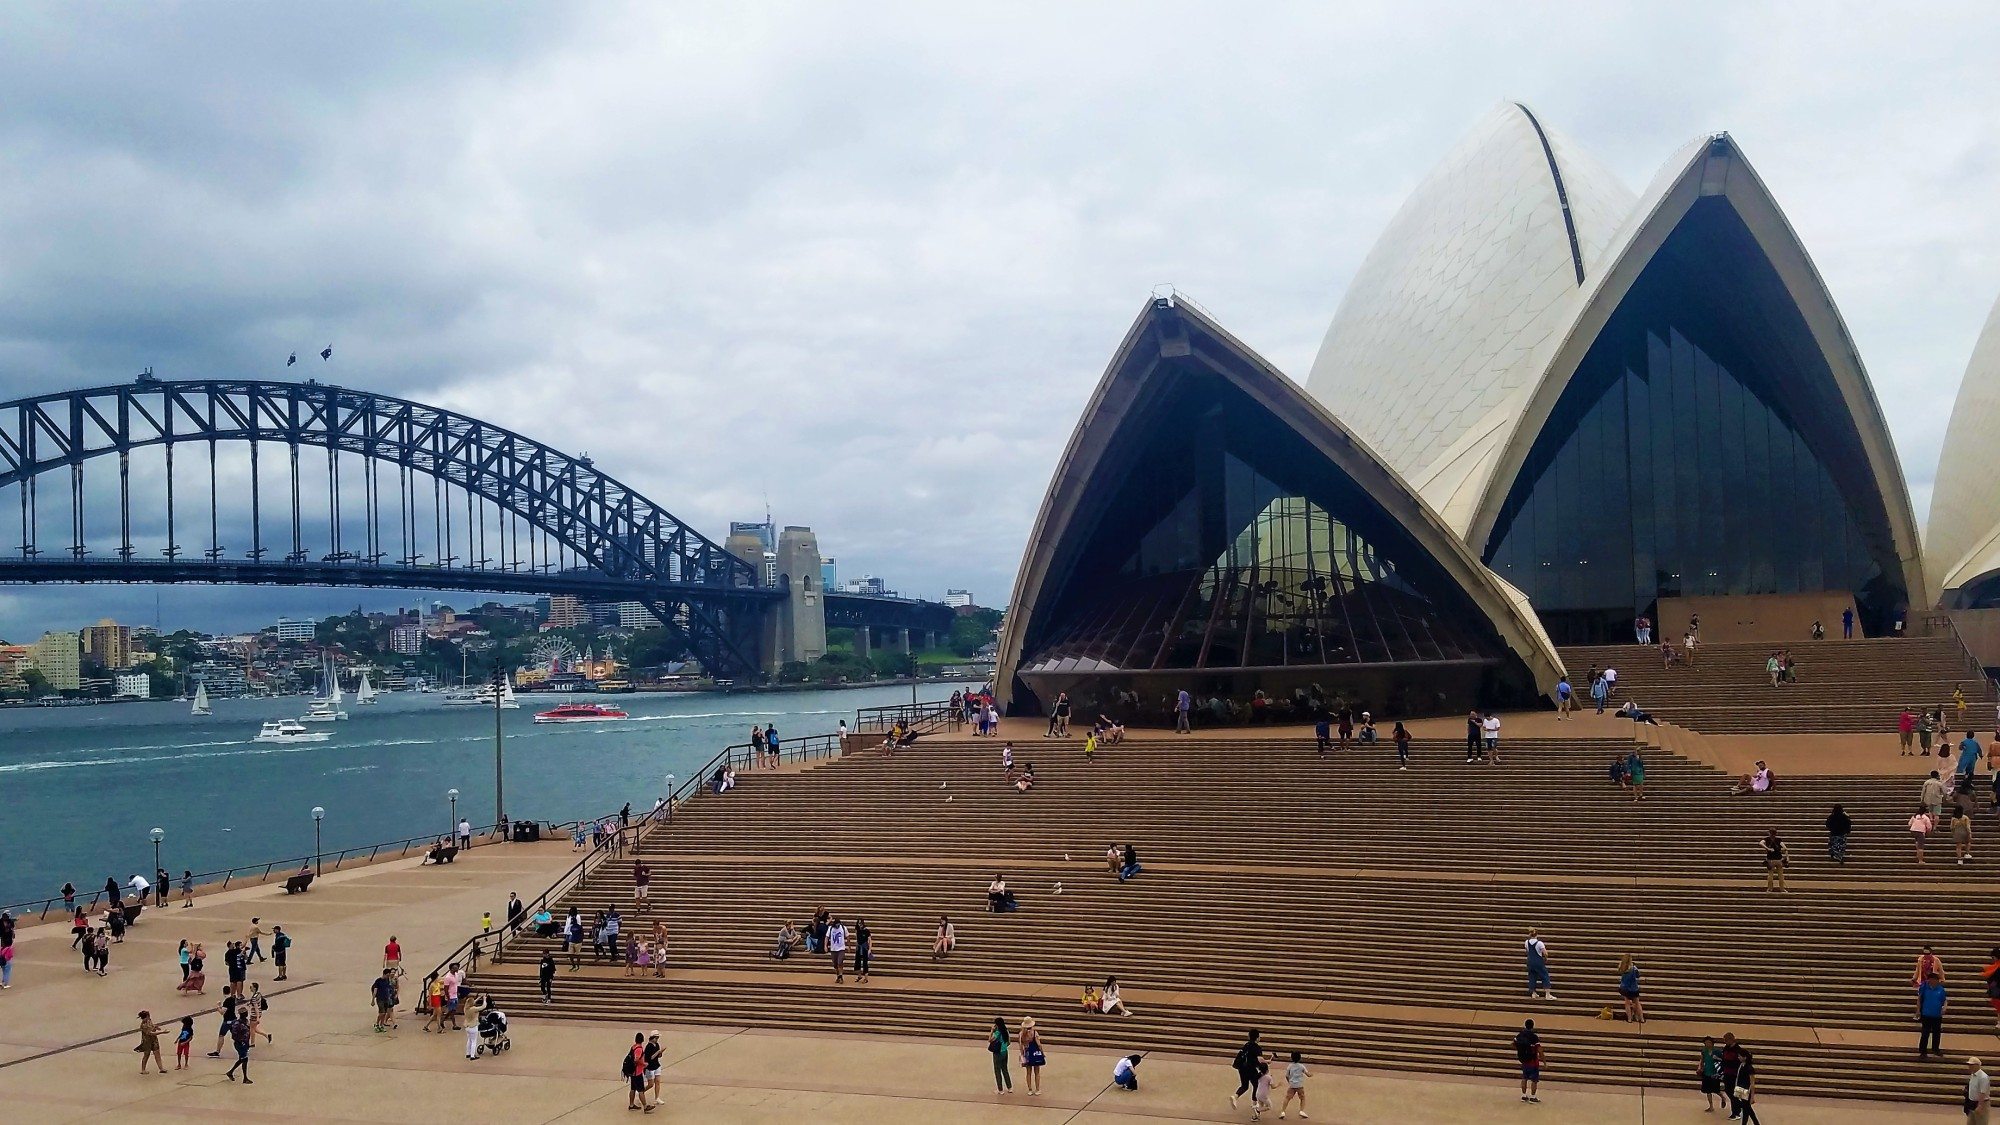 Australia Travel Guide | Sydney City Tour | Sydney Harbor Lunch Cruise | Guide Tour of Sydney Opera House